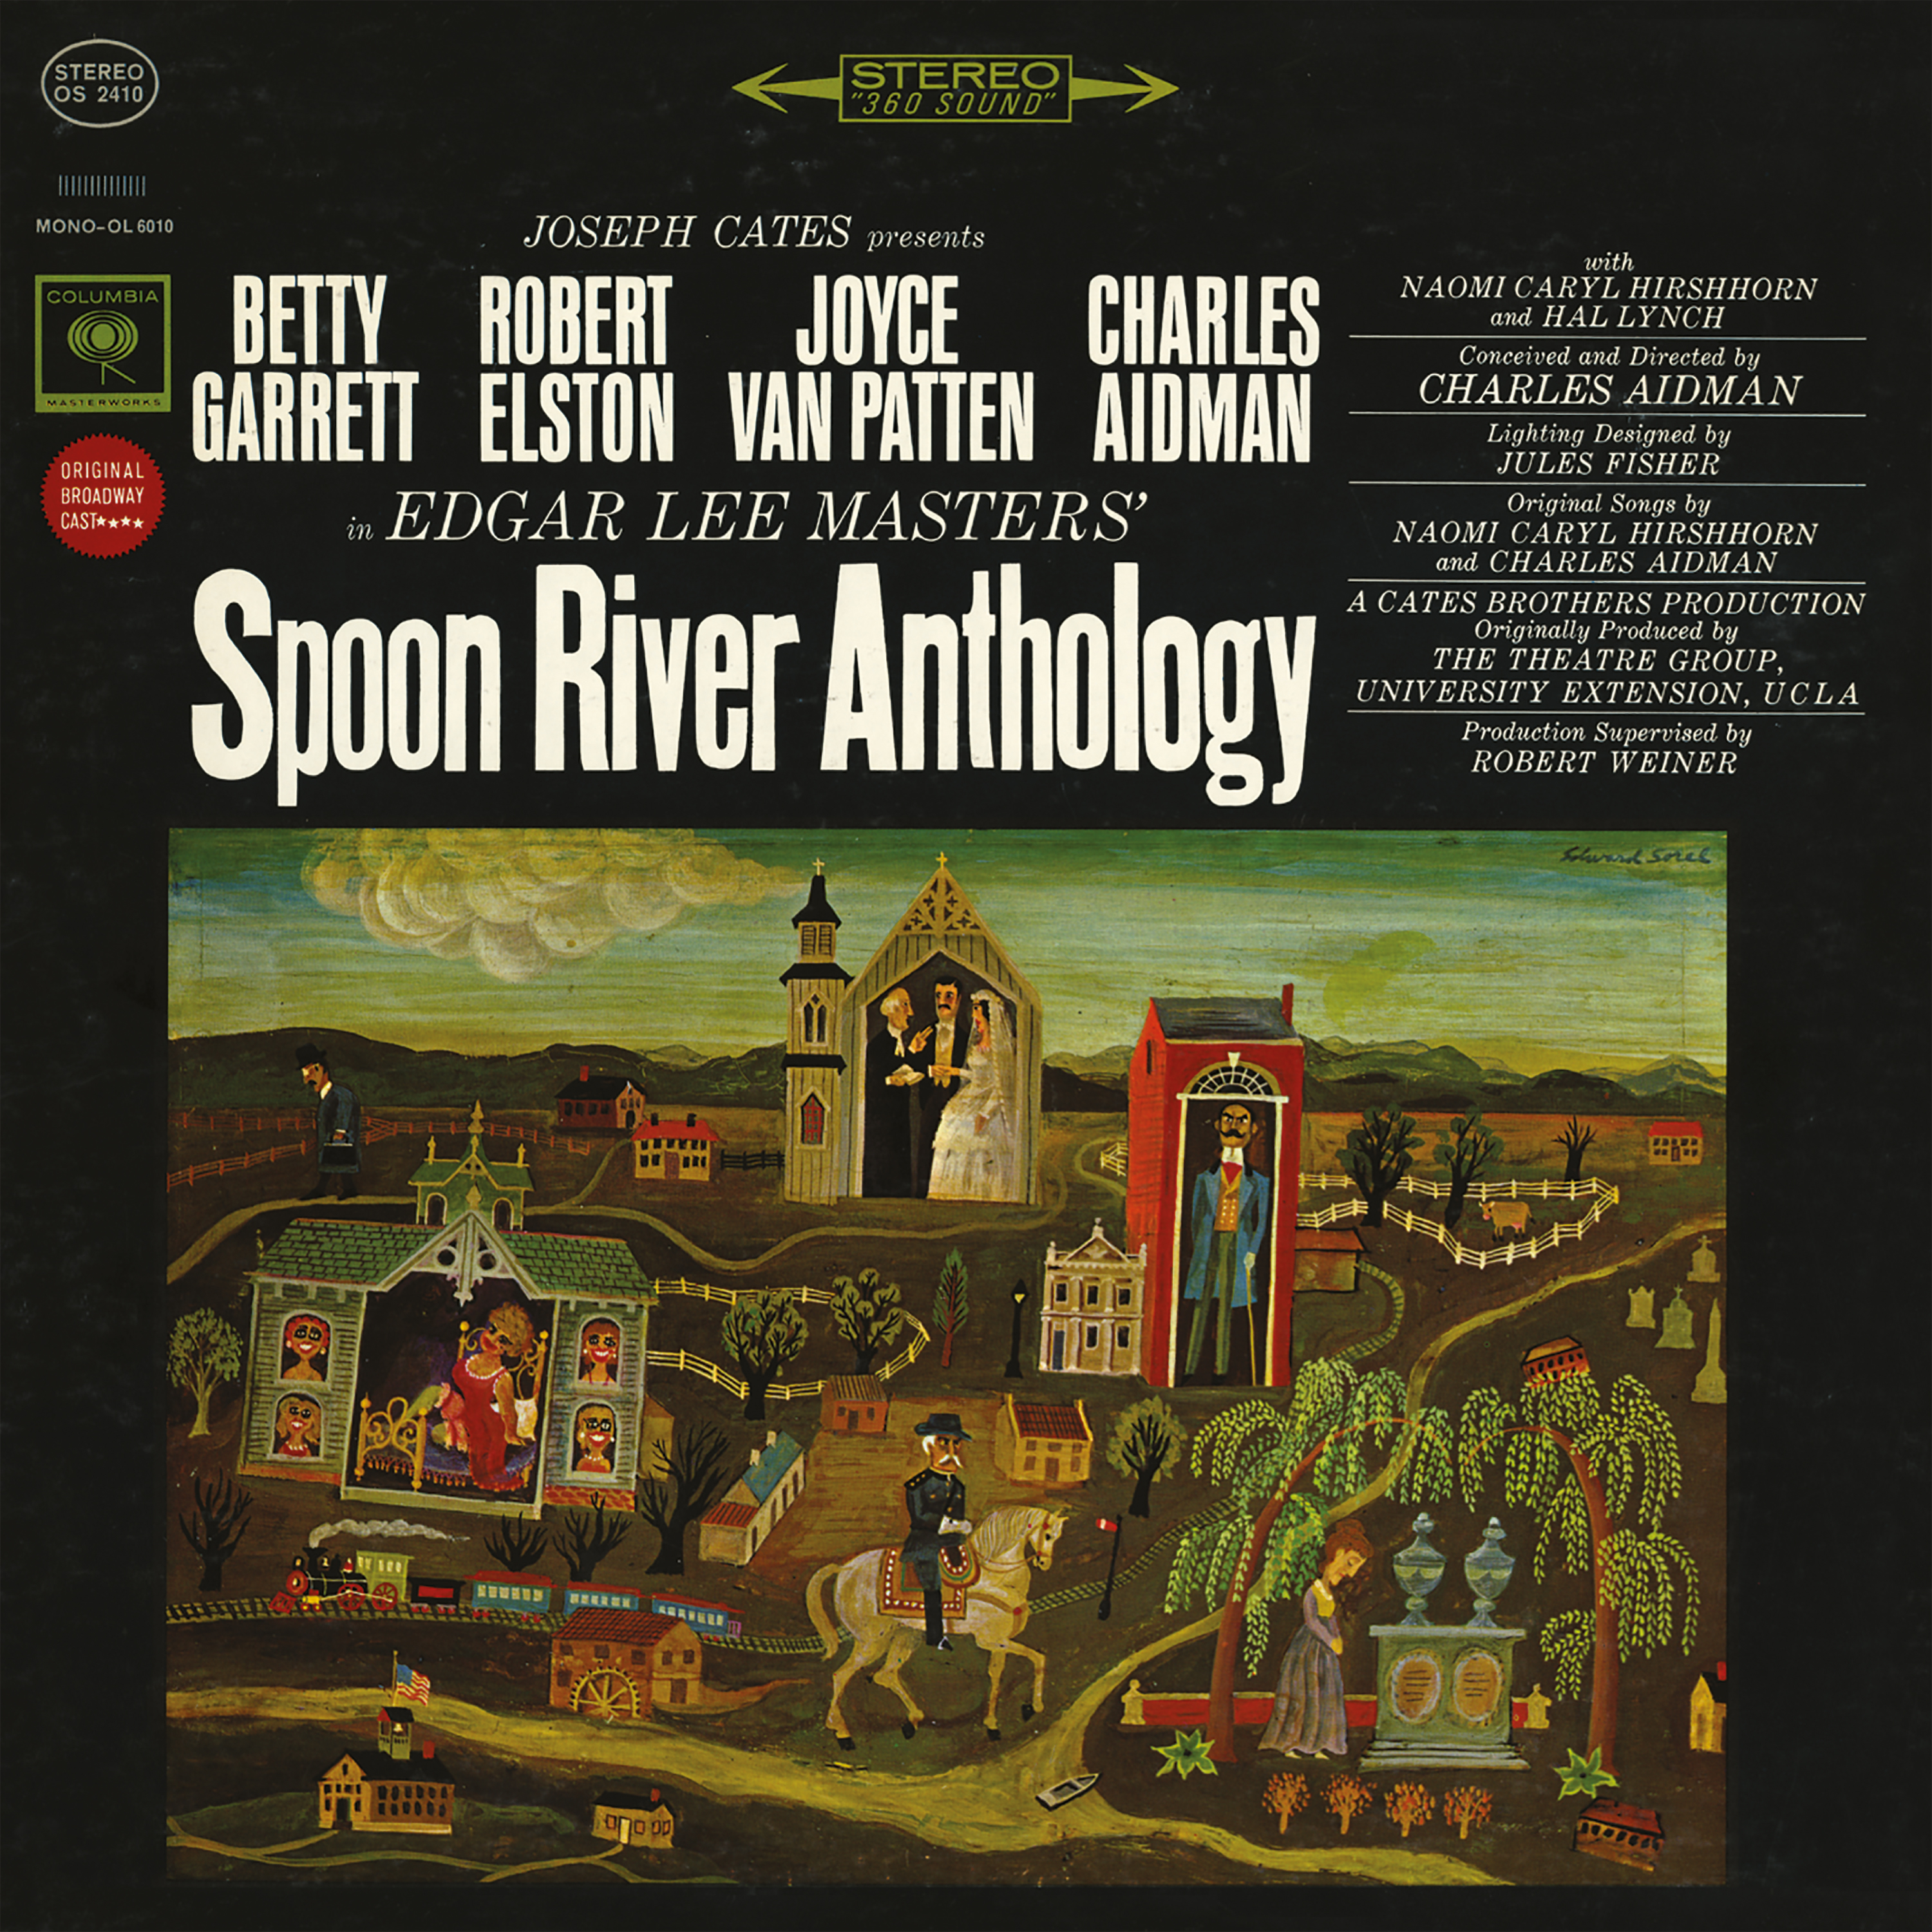 SPOON RIVER ANTHOLOGY – 1963 Original Broadway Cast Recording